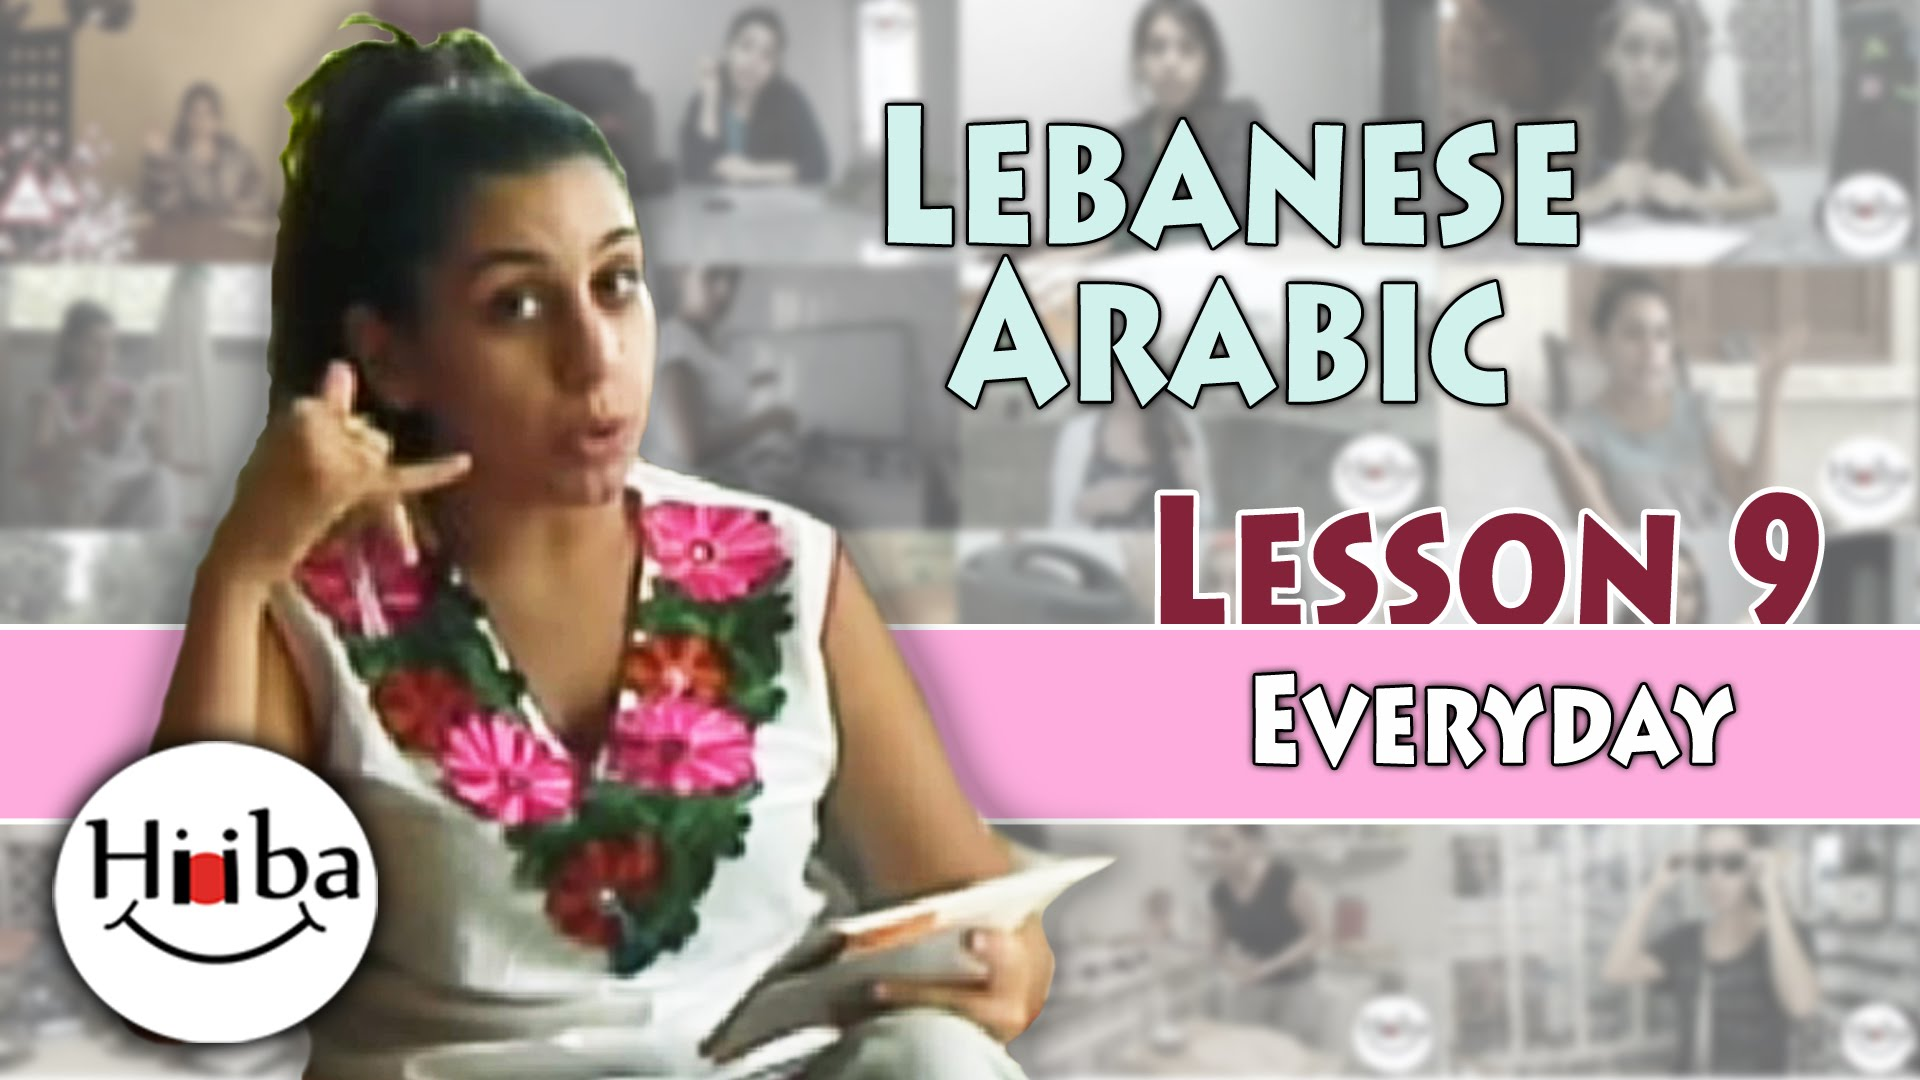 Thumbnail of the Video: Learn Arabic (Lebanese) Lesson 9 (Everyday Sentences). It contains a picture of Hiba Najem and the title